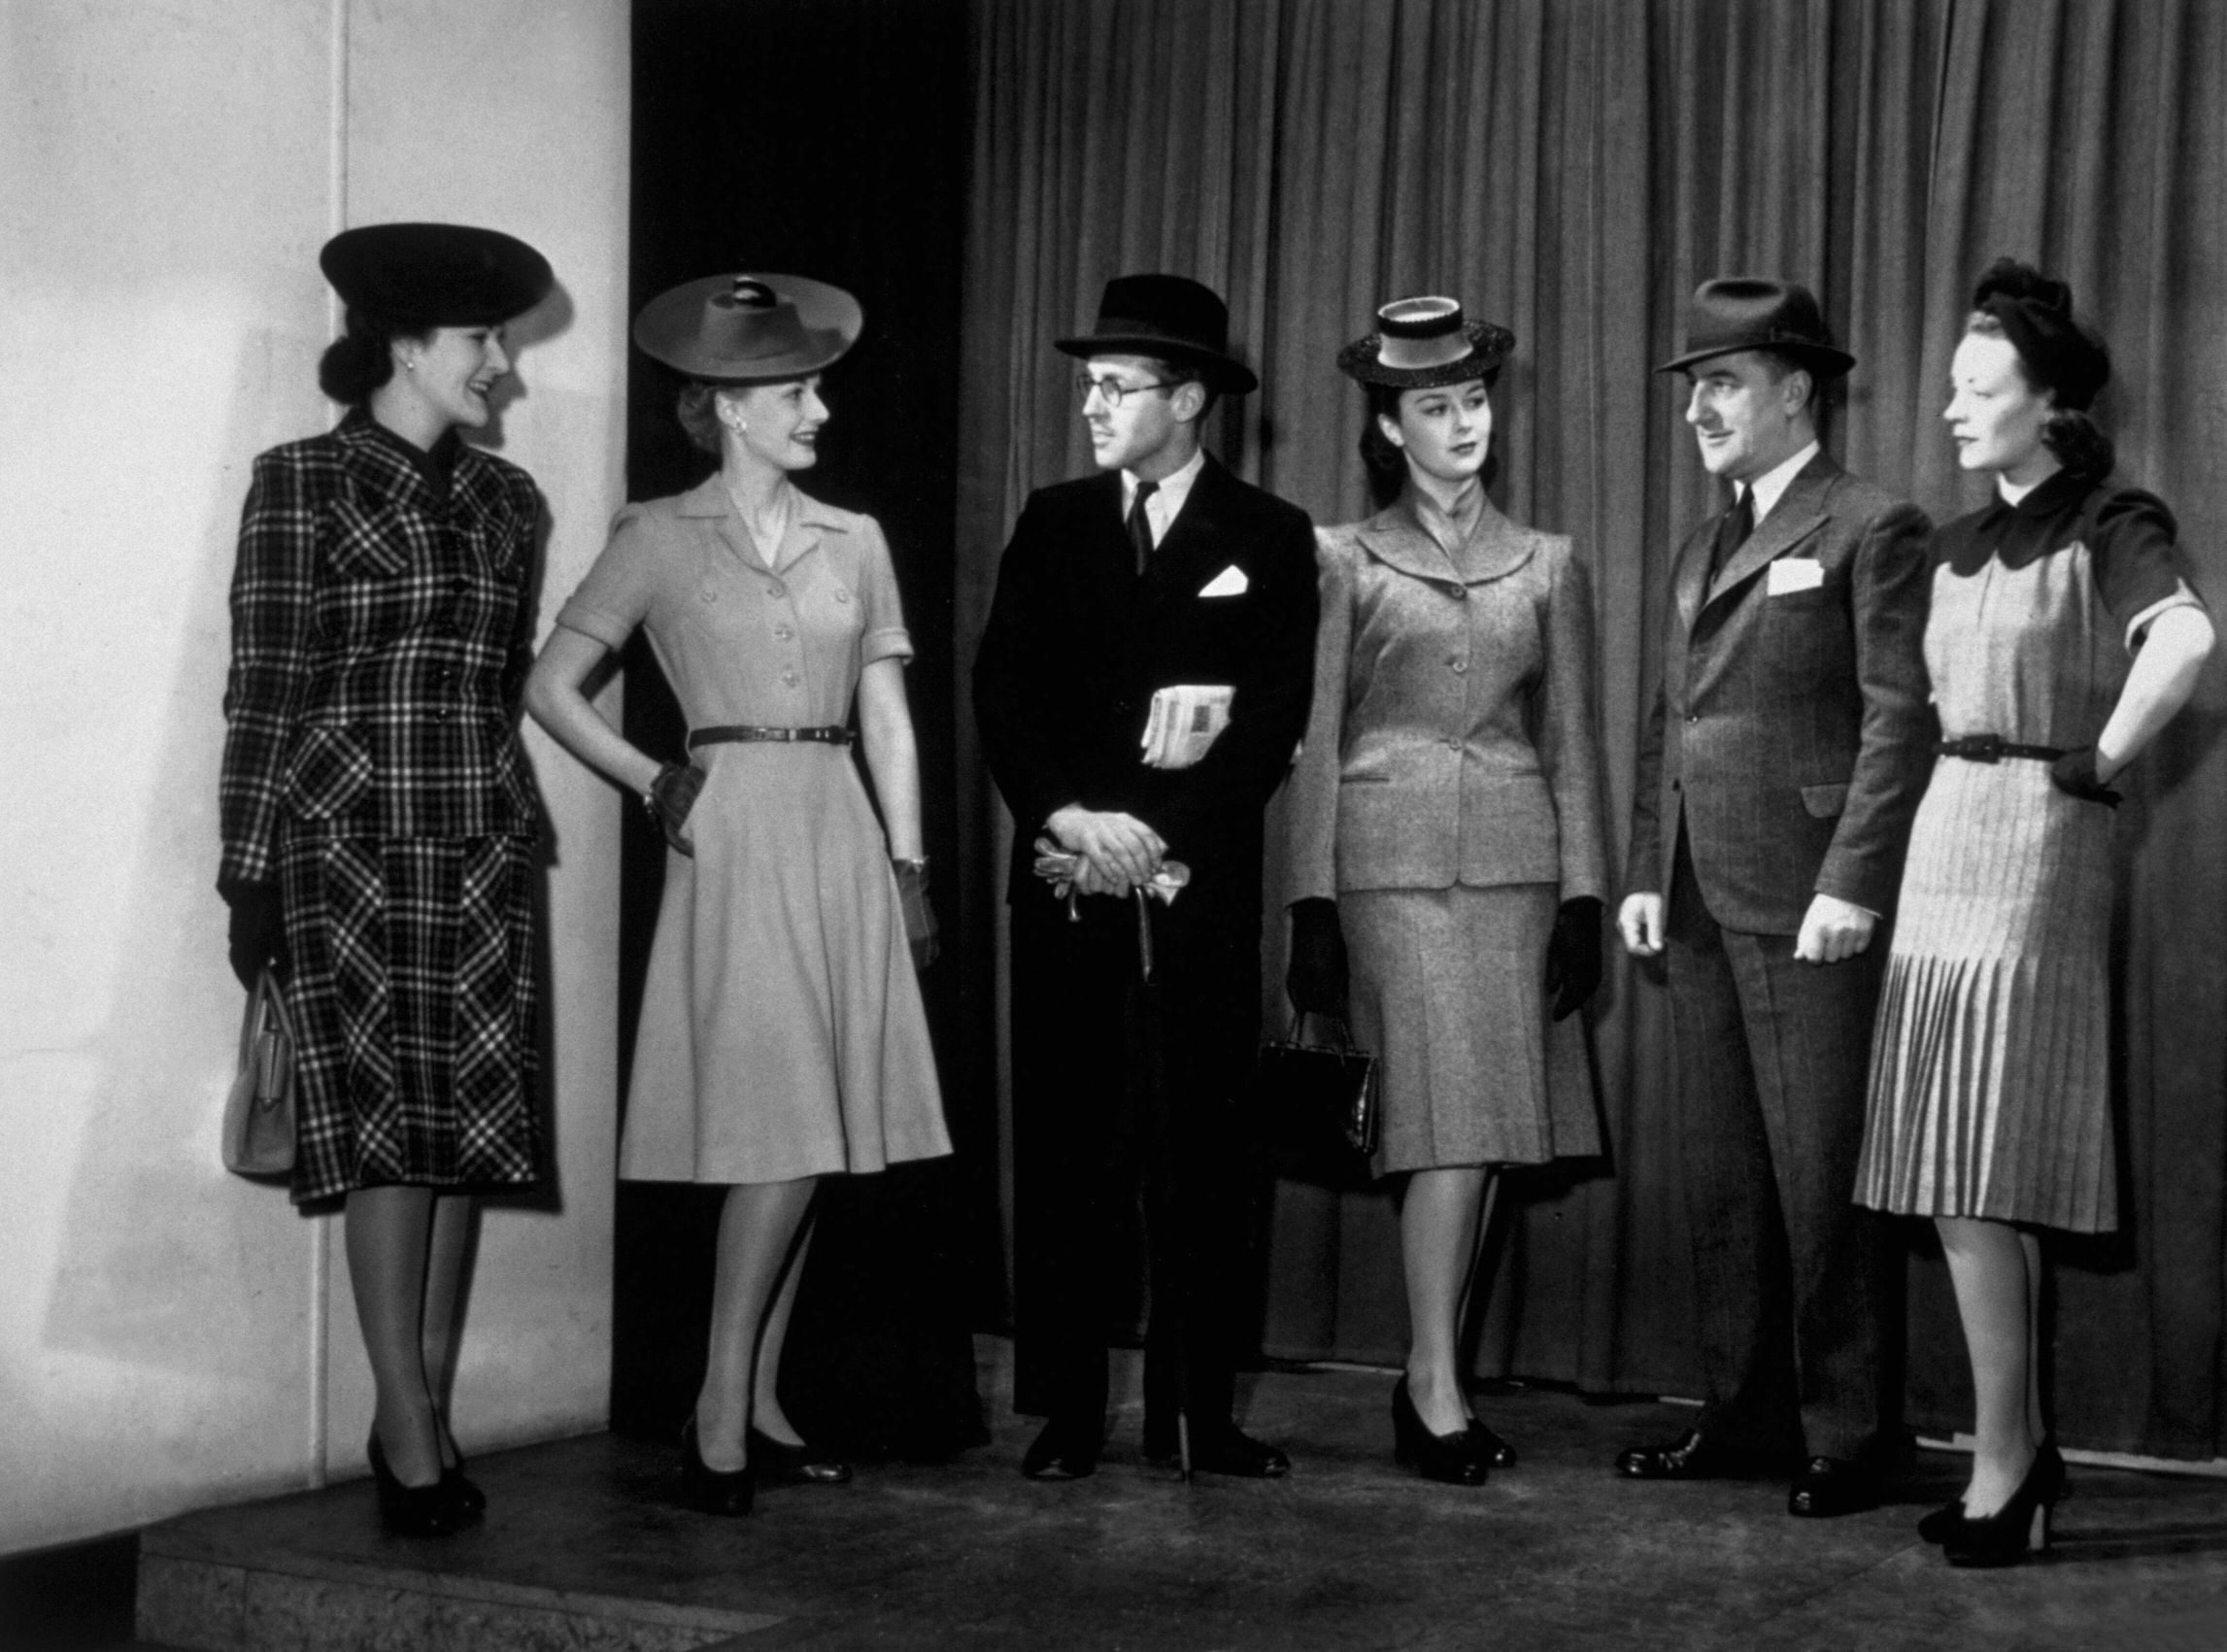 image gallery london 1940 fashion